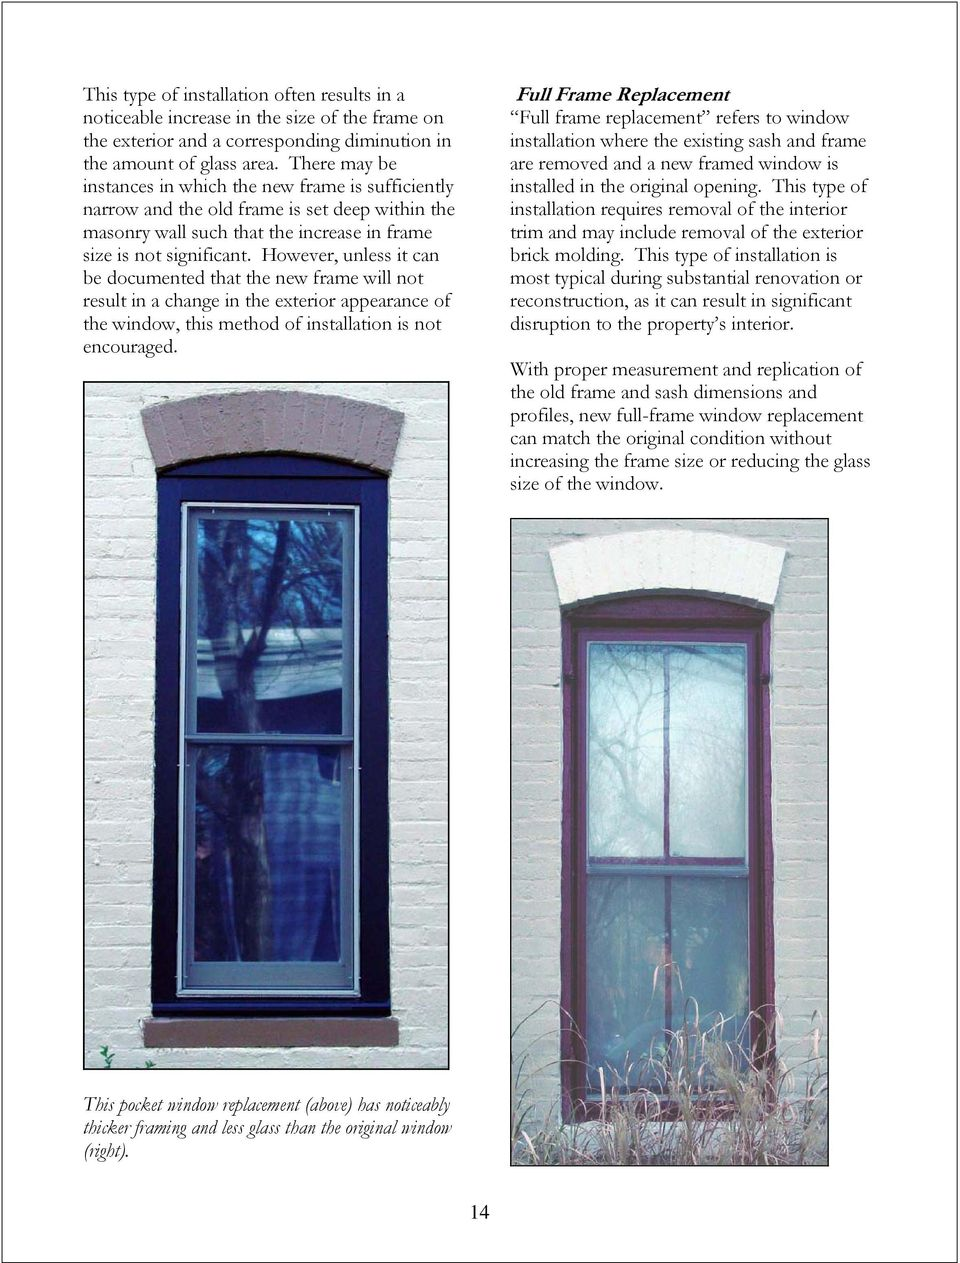 However, unless it can be documented that the new frame will not result in a change in the exterior appearance of the window, this method of installation is not encouraged.